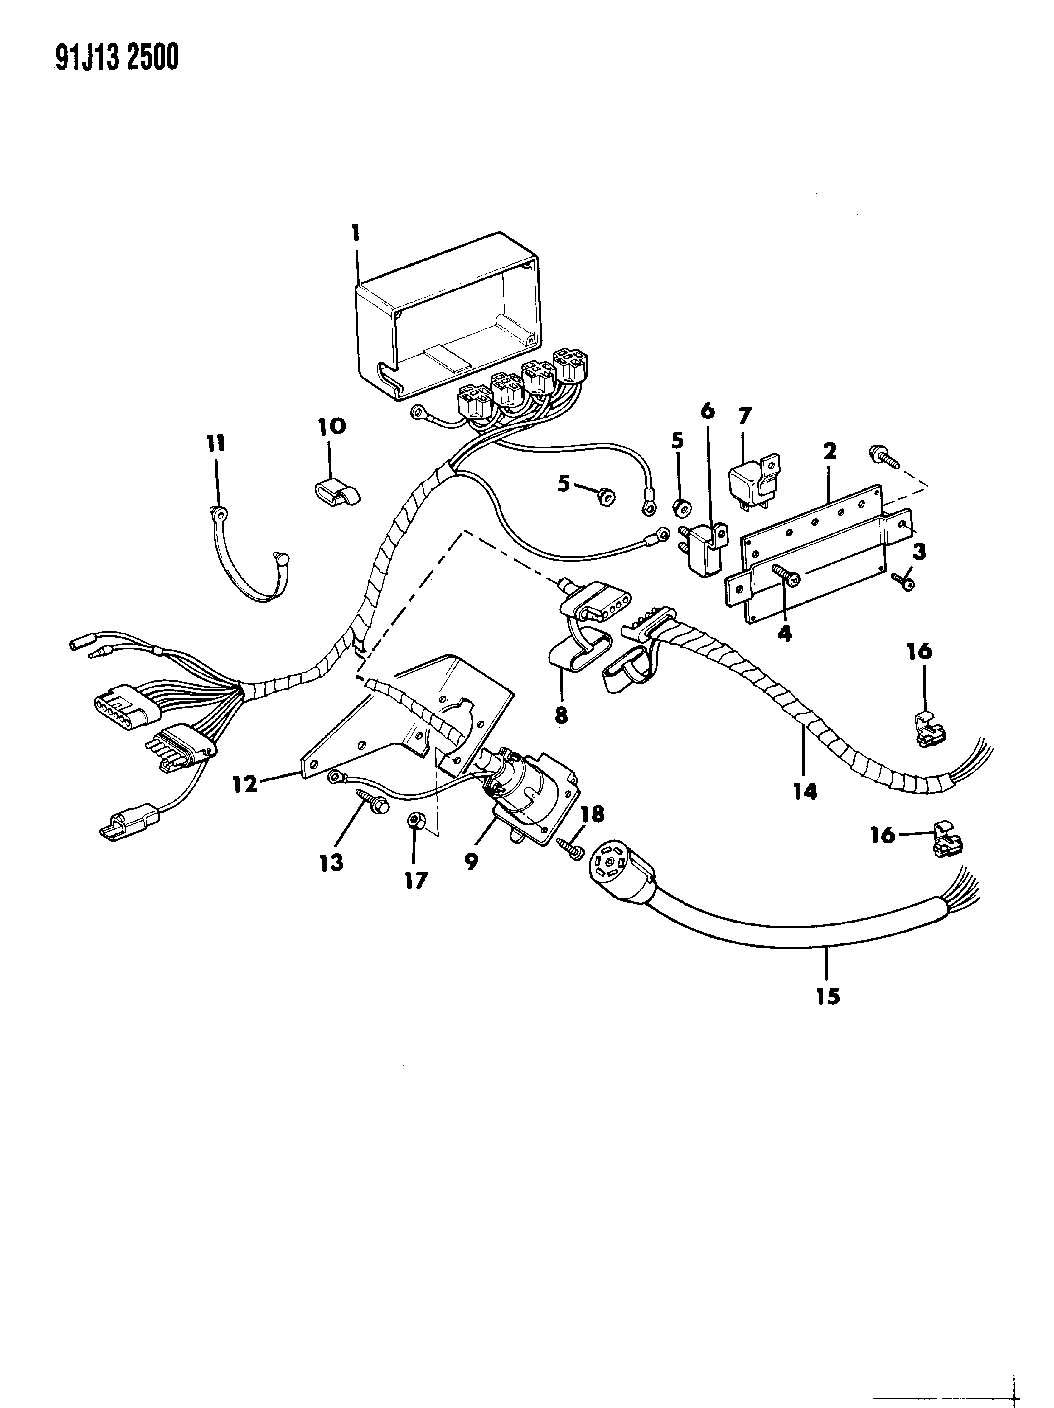 Diagram  Subaru Trailer Hitch Wiring Diagram Full Version